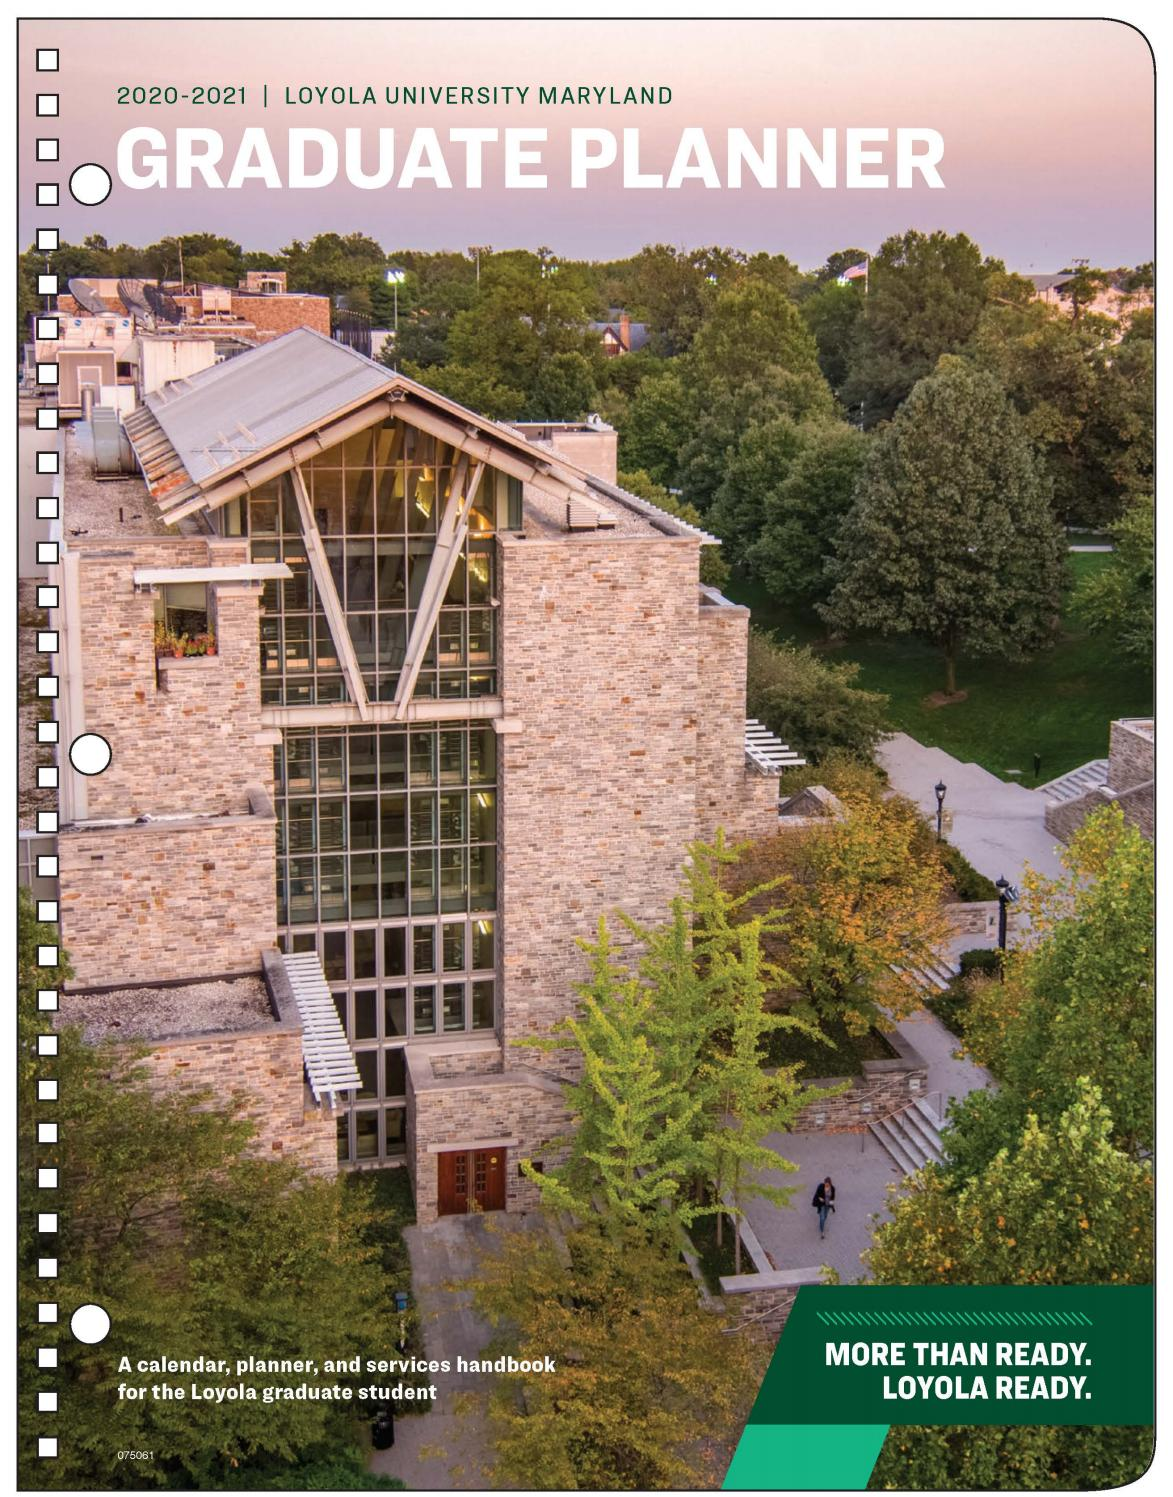 2020 2021 Loyola University Maryland Graduate Planner and Services